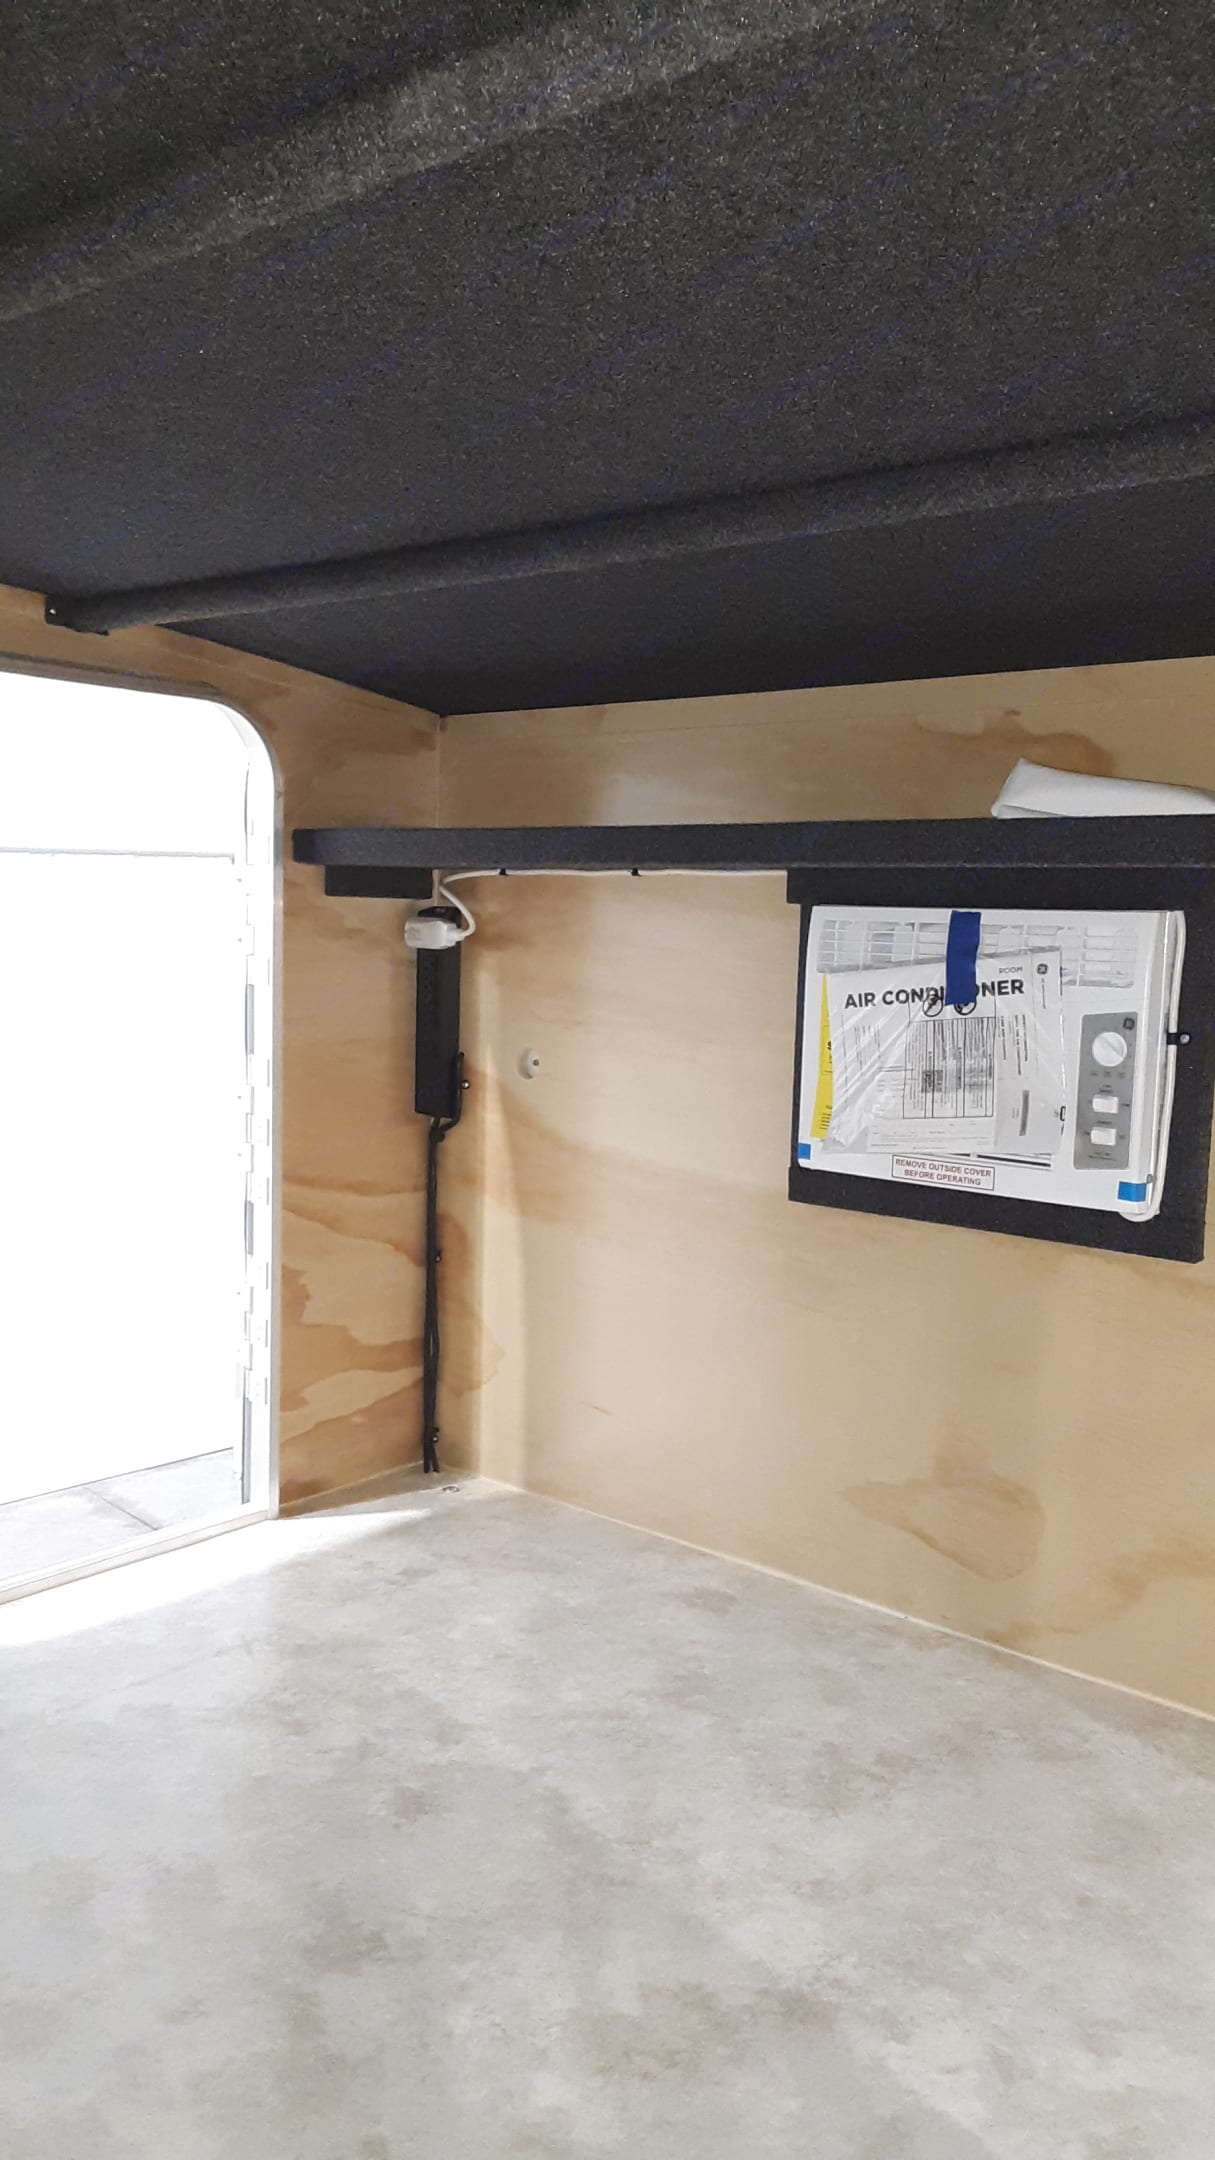 Shelf above the Air Conditioner is a great place to put small personal belongings before going to bed at night.  Keep all valuables locked in your car. Runaway Campers Rangerunner 2019